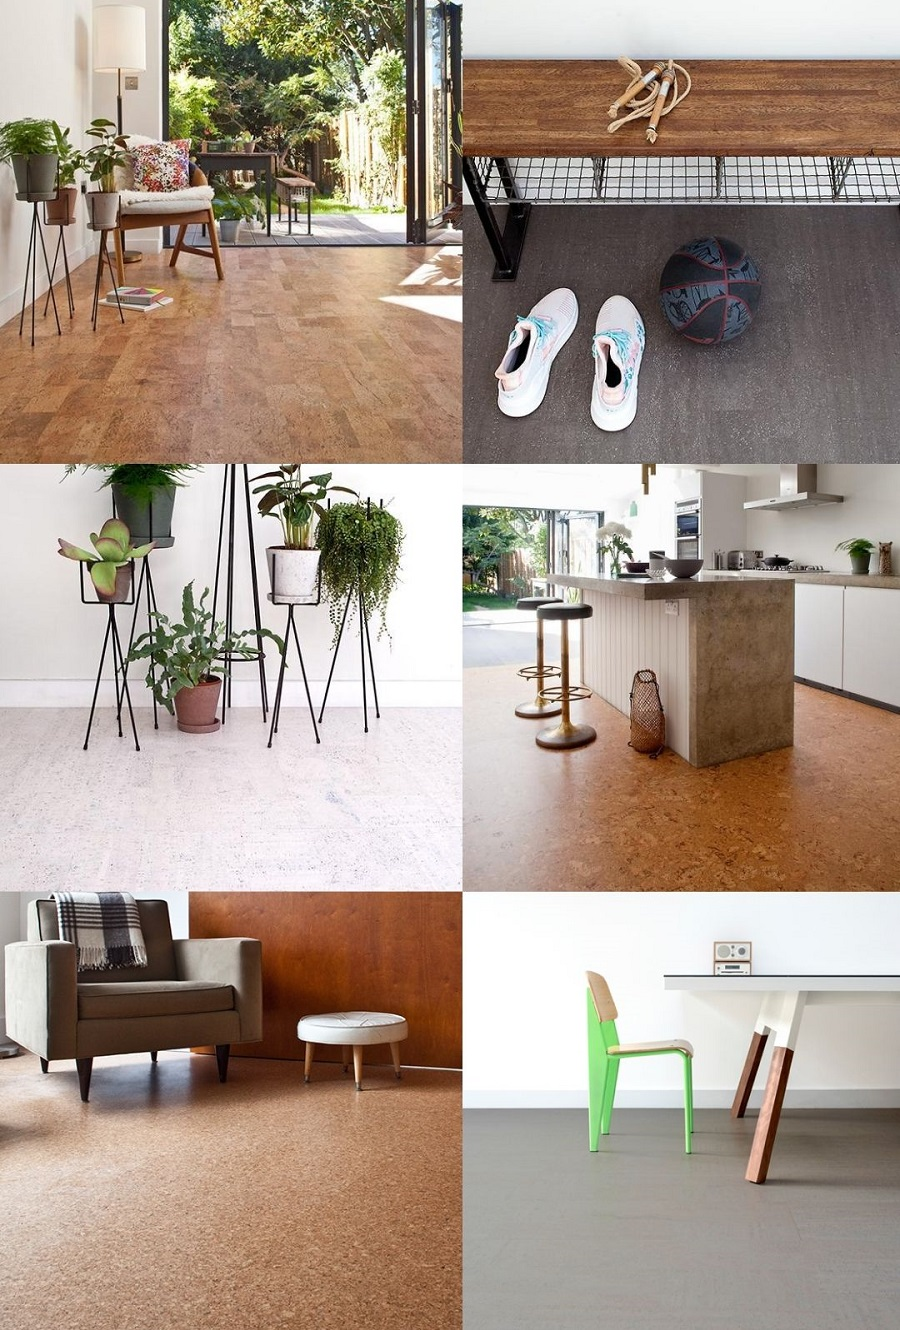 Portugal, Cork Flooring and Sustainability